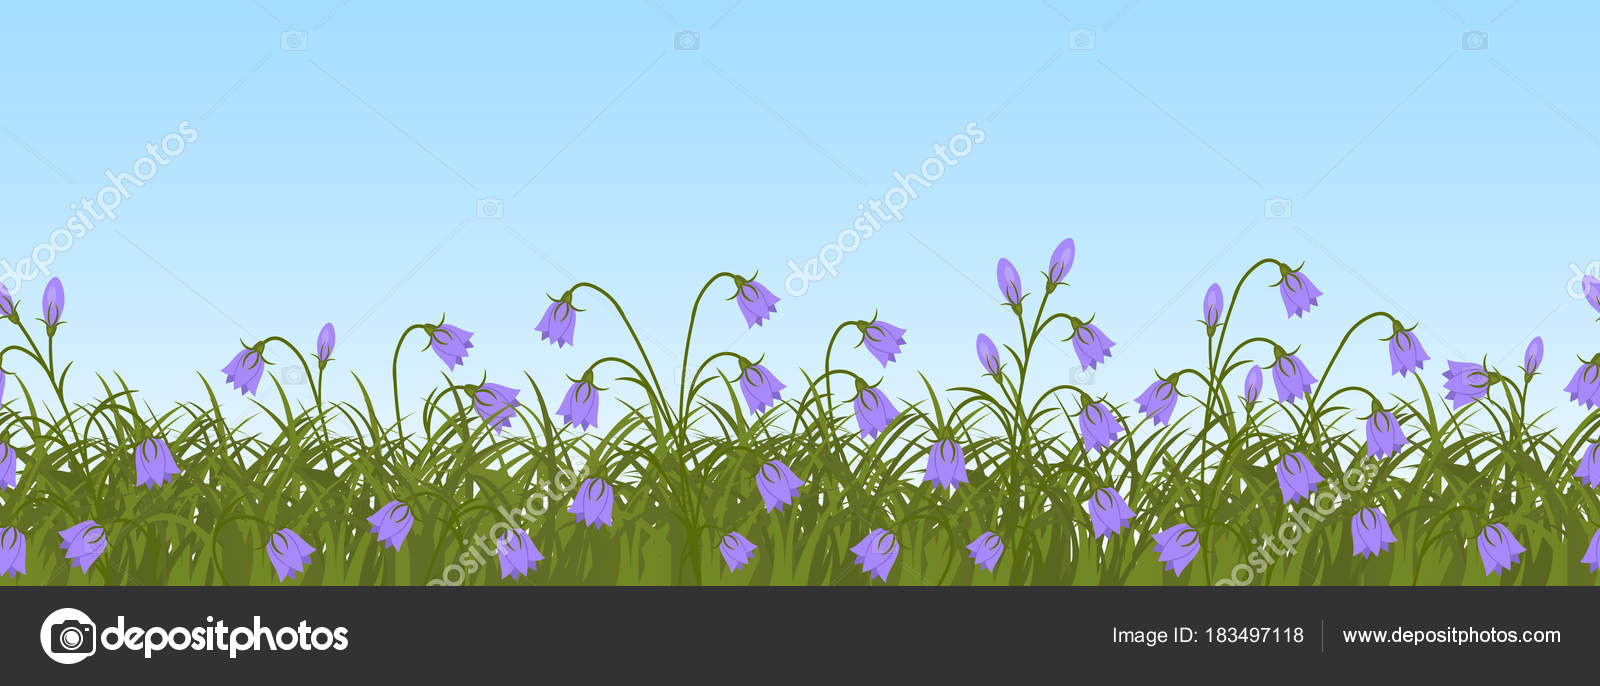 green grass blue sky flowers tropical purple bell flowers green grass blue sky background border spring stock vector